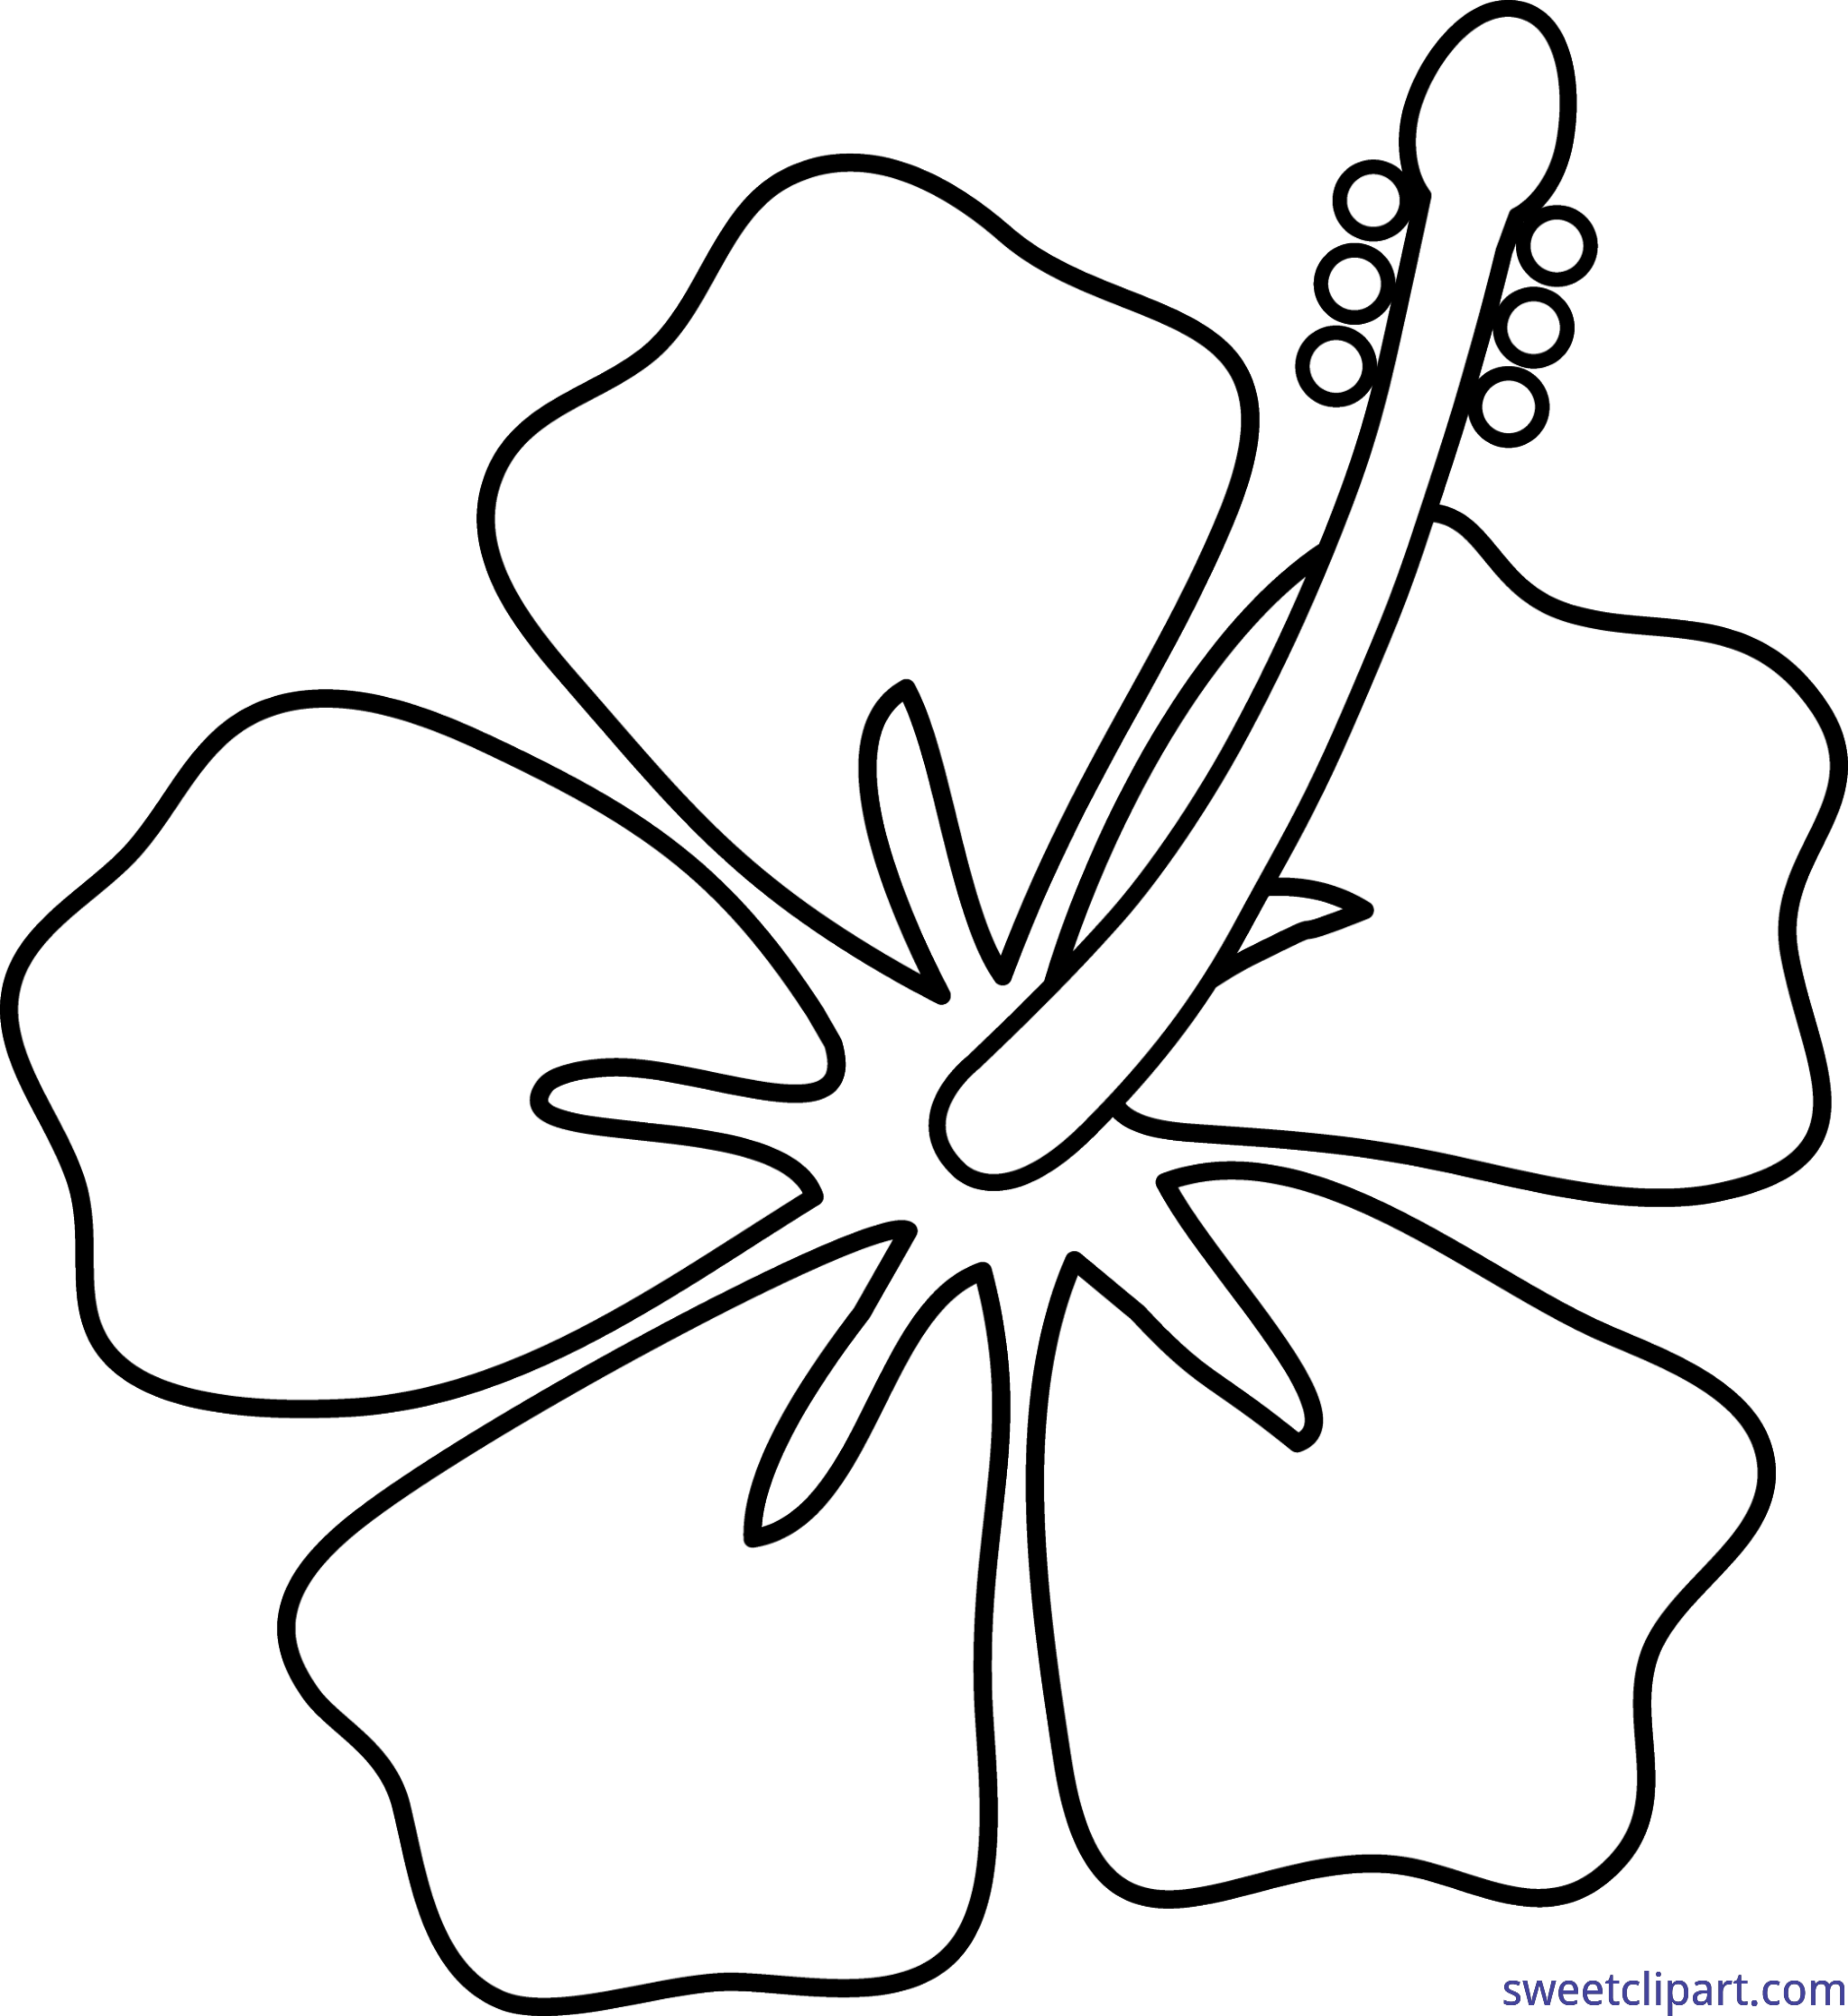 Flower lineart clip art. Hibiscus clipart black and white